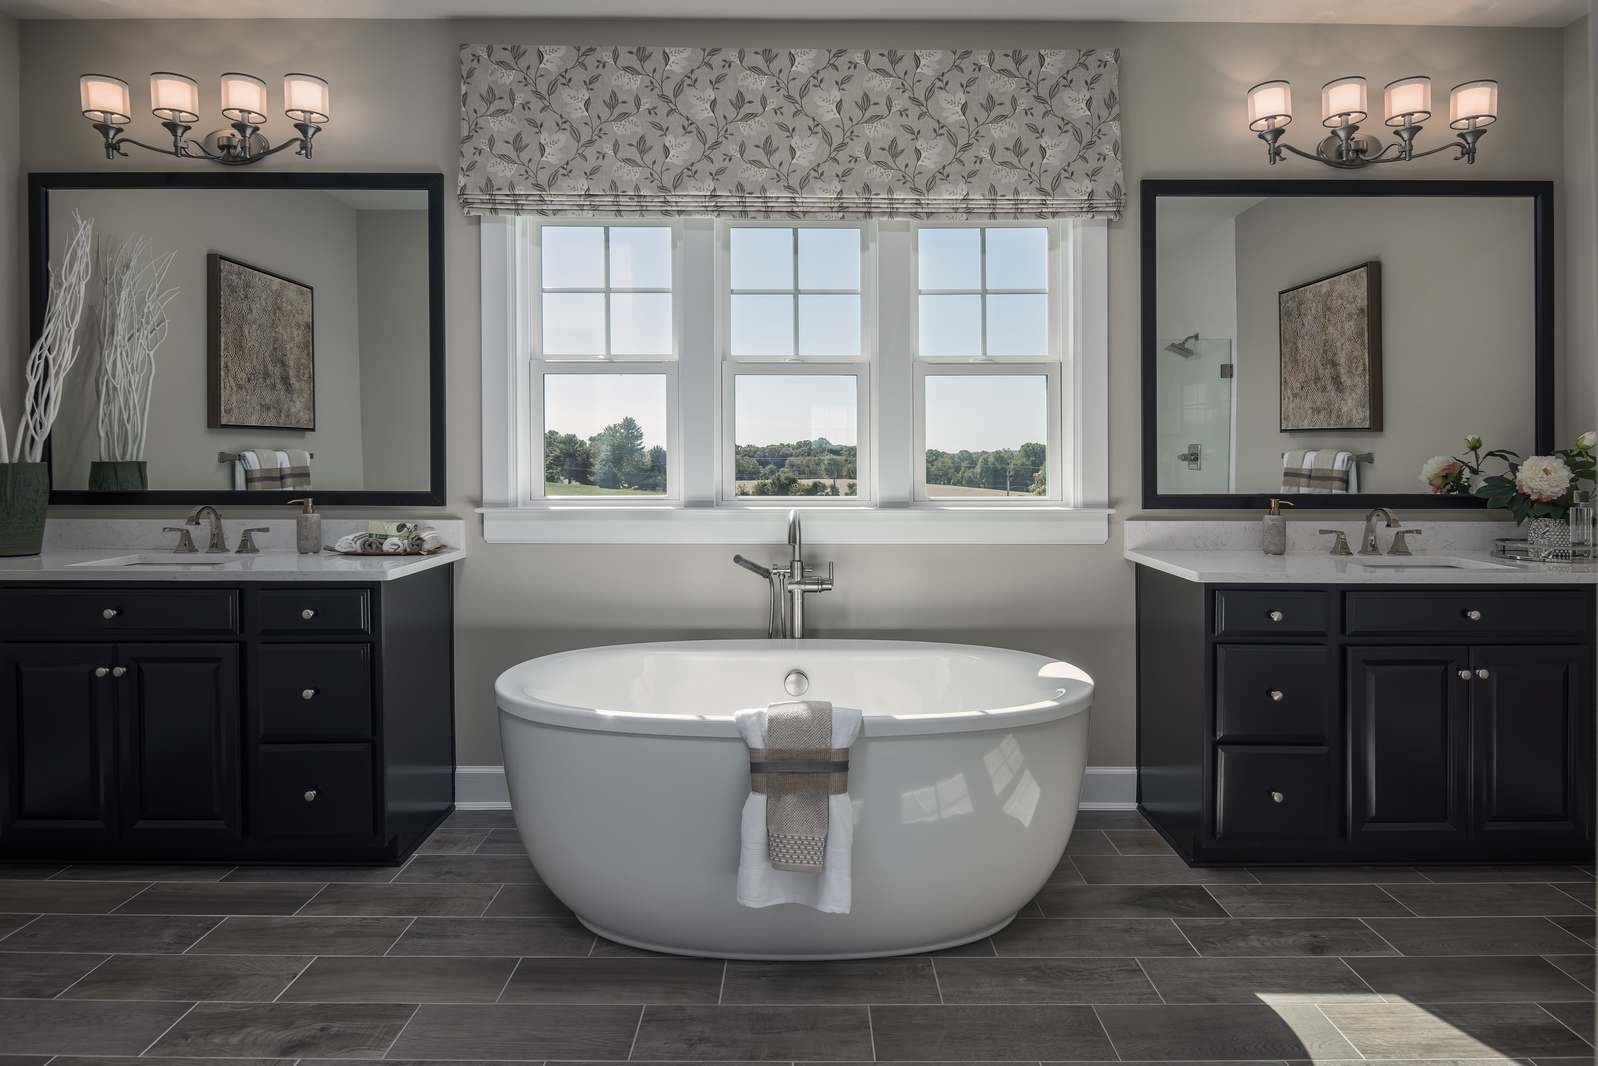 With walk-In showers and luxury soaking tubs, you won't need to leave home to feel pampered.